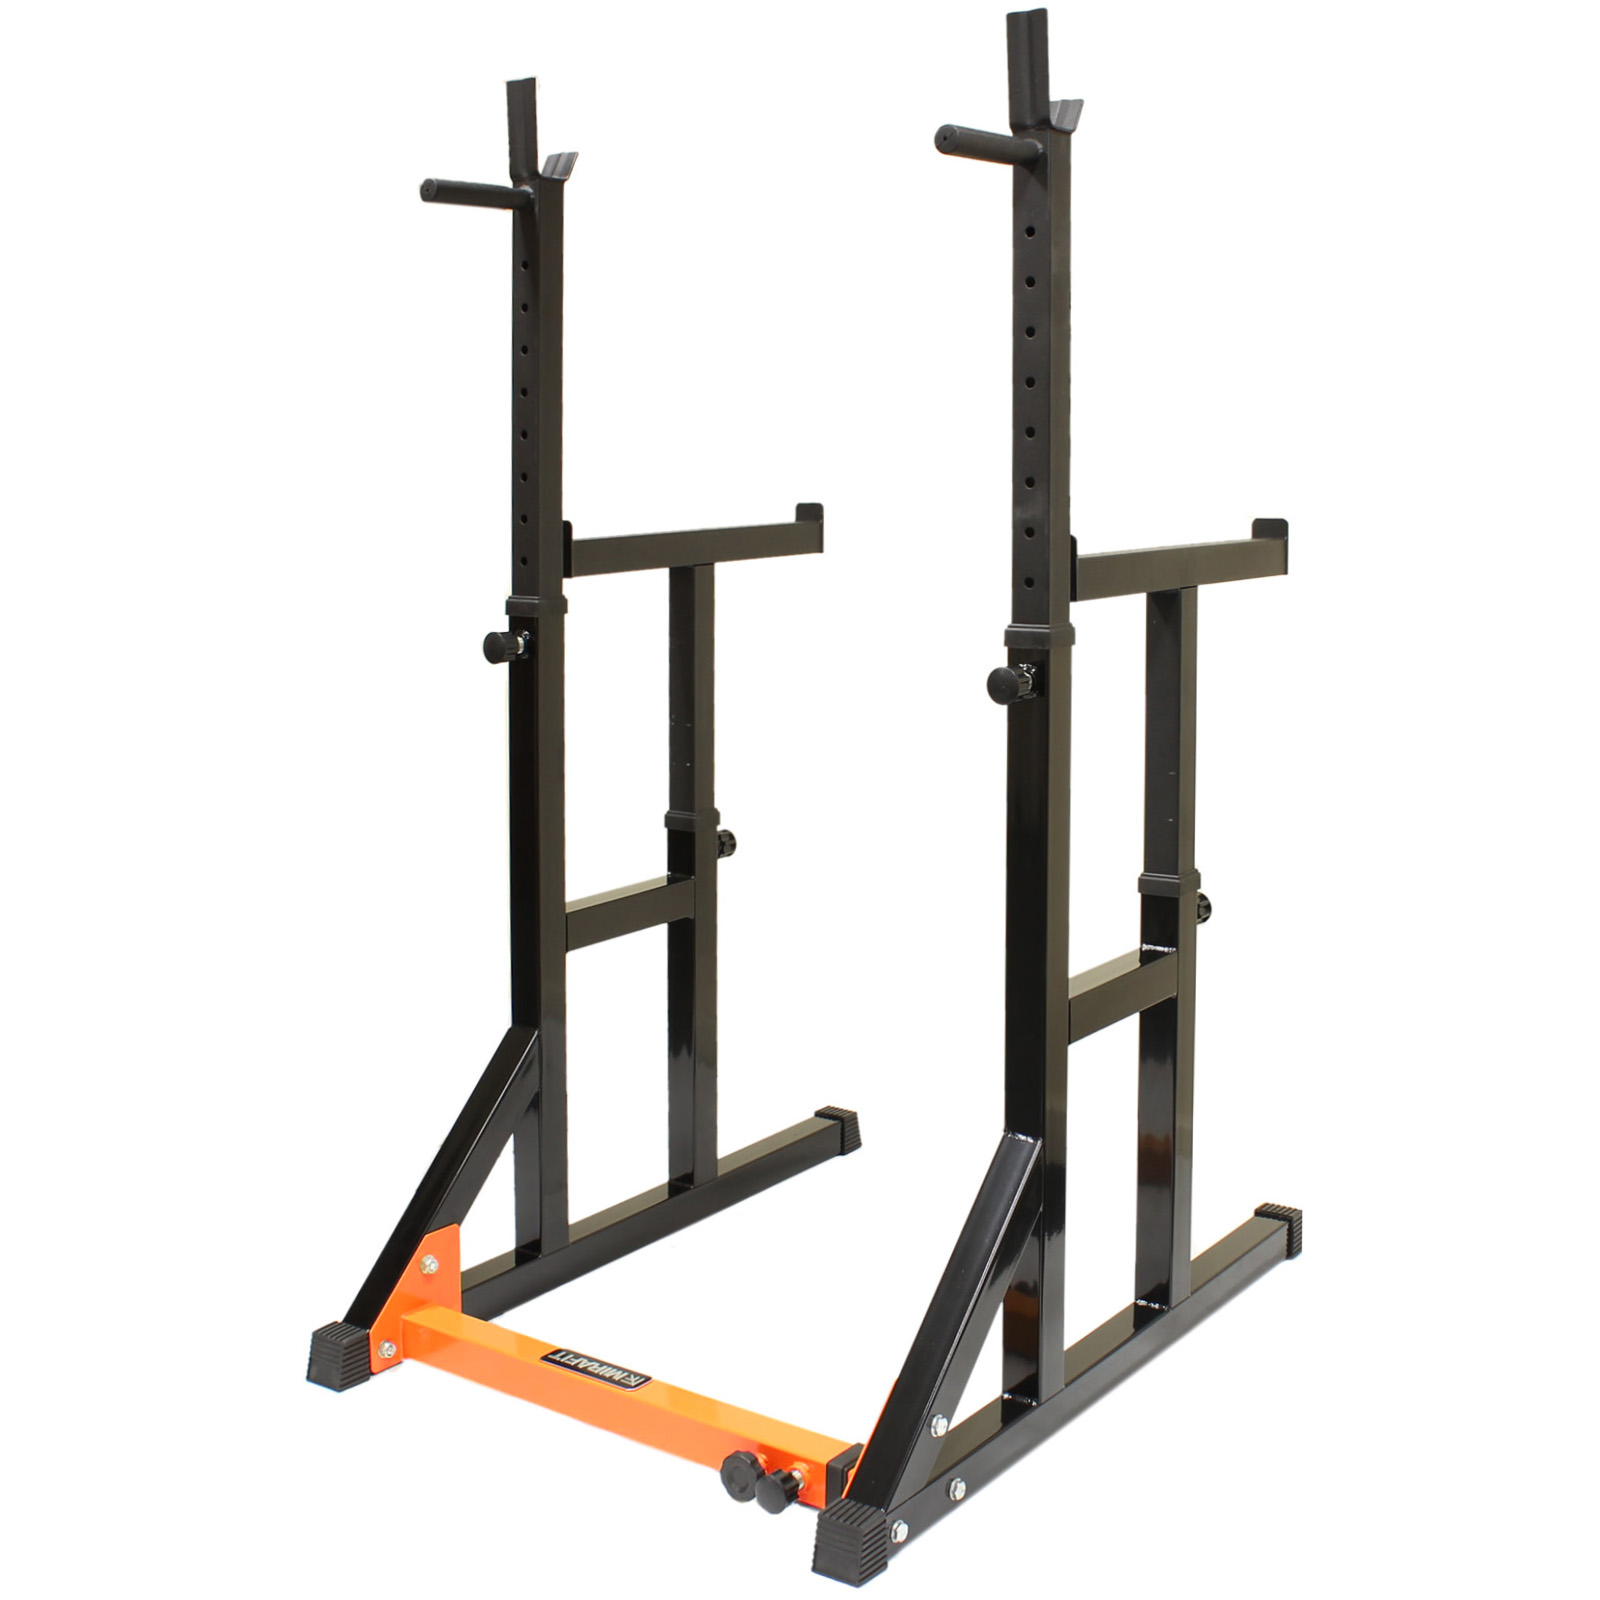 Mirafit Hd Adjustable Fid Weight Bench Squat Rack Dip Stand Press Lifting Kit Ebay